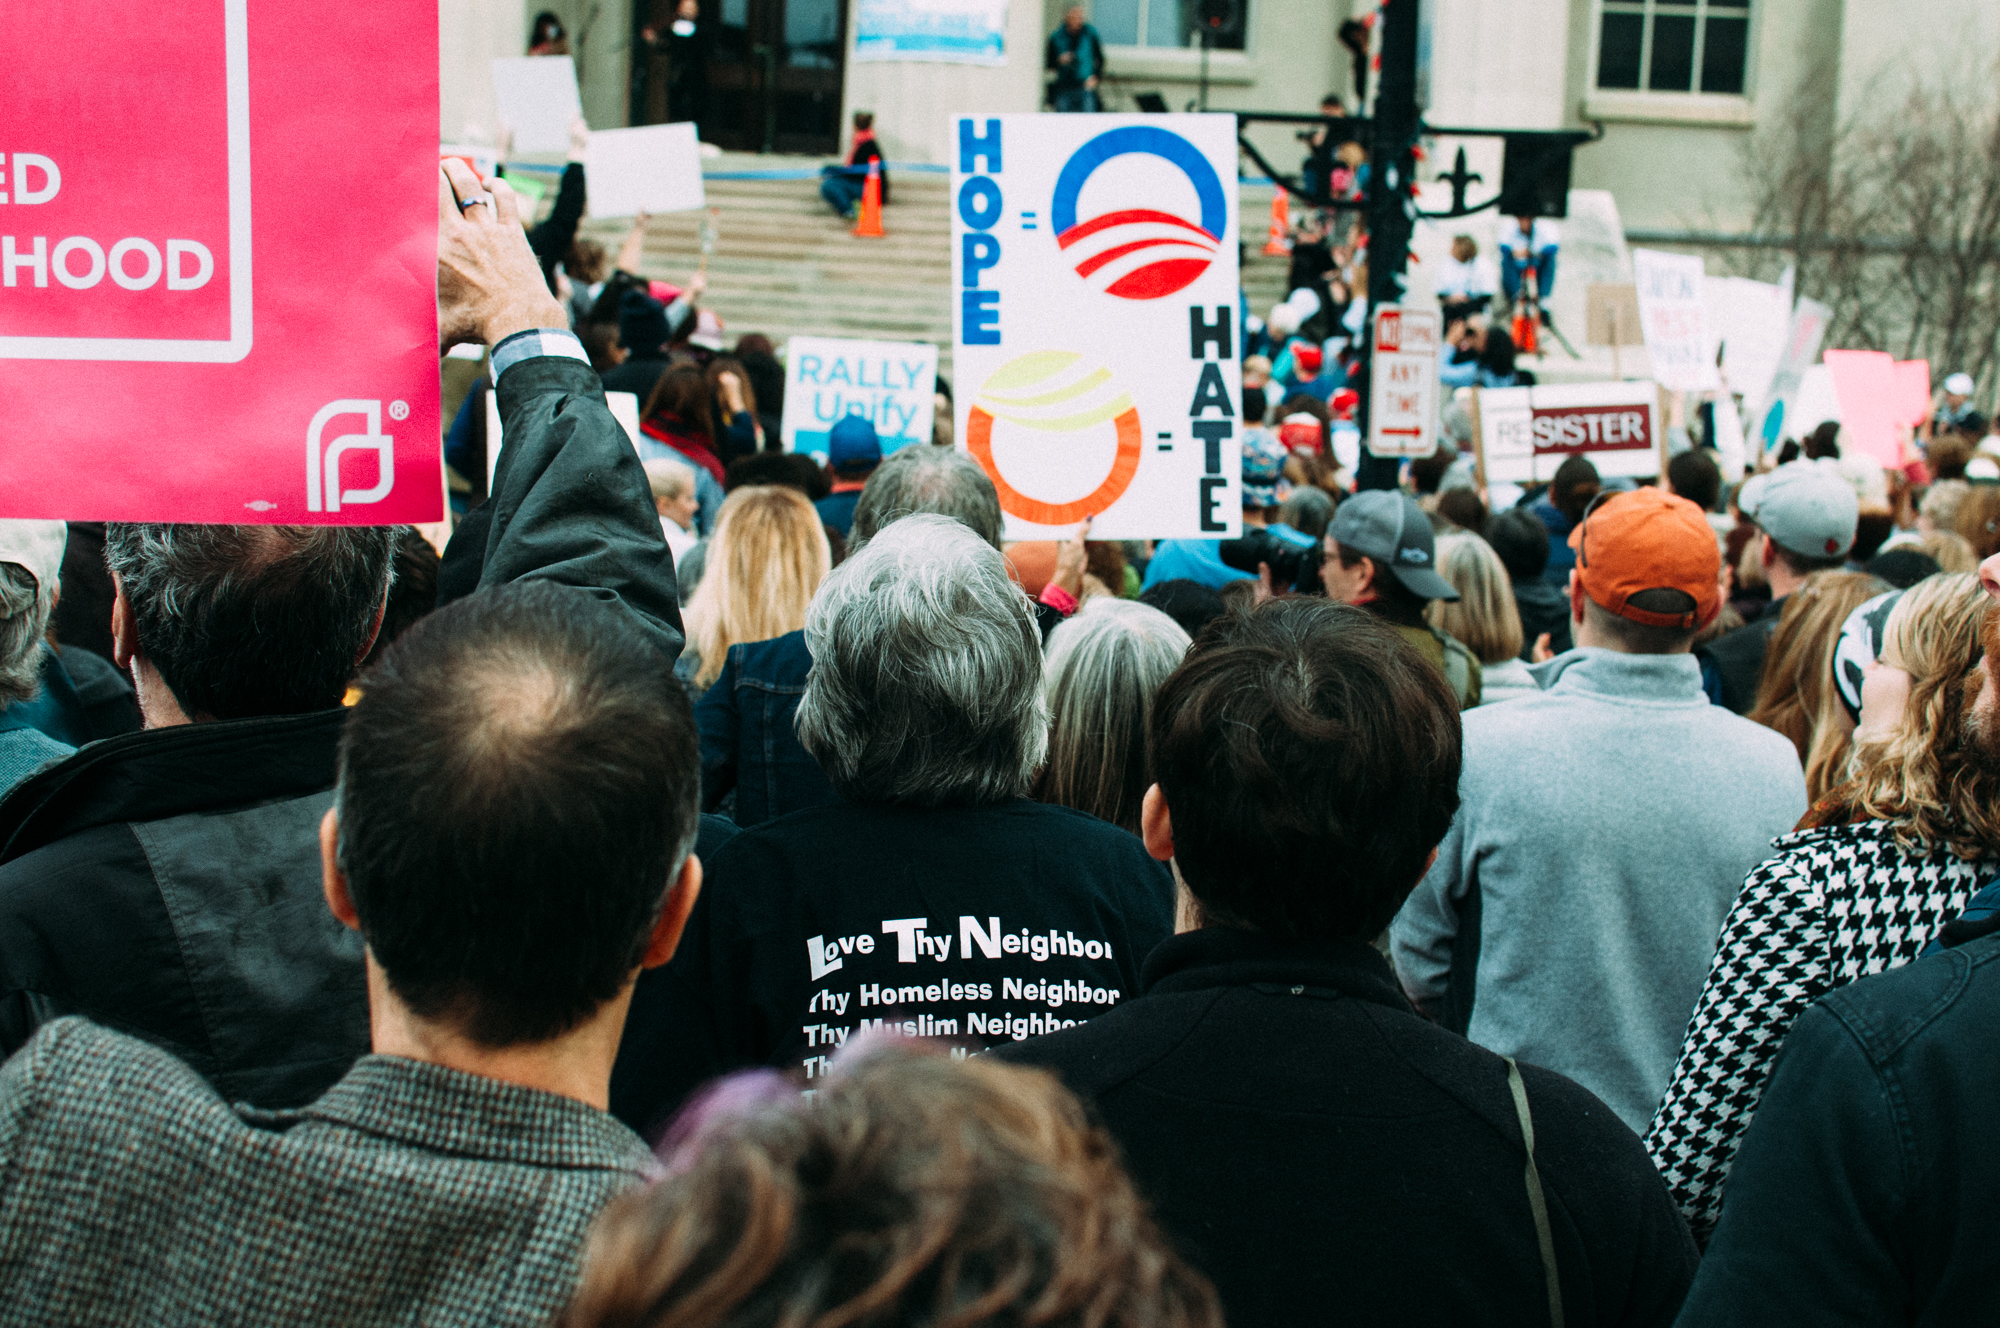 rally to move forward louisville protest trump-18.jpg